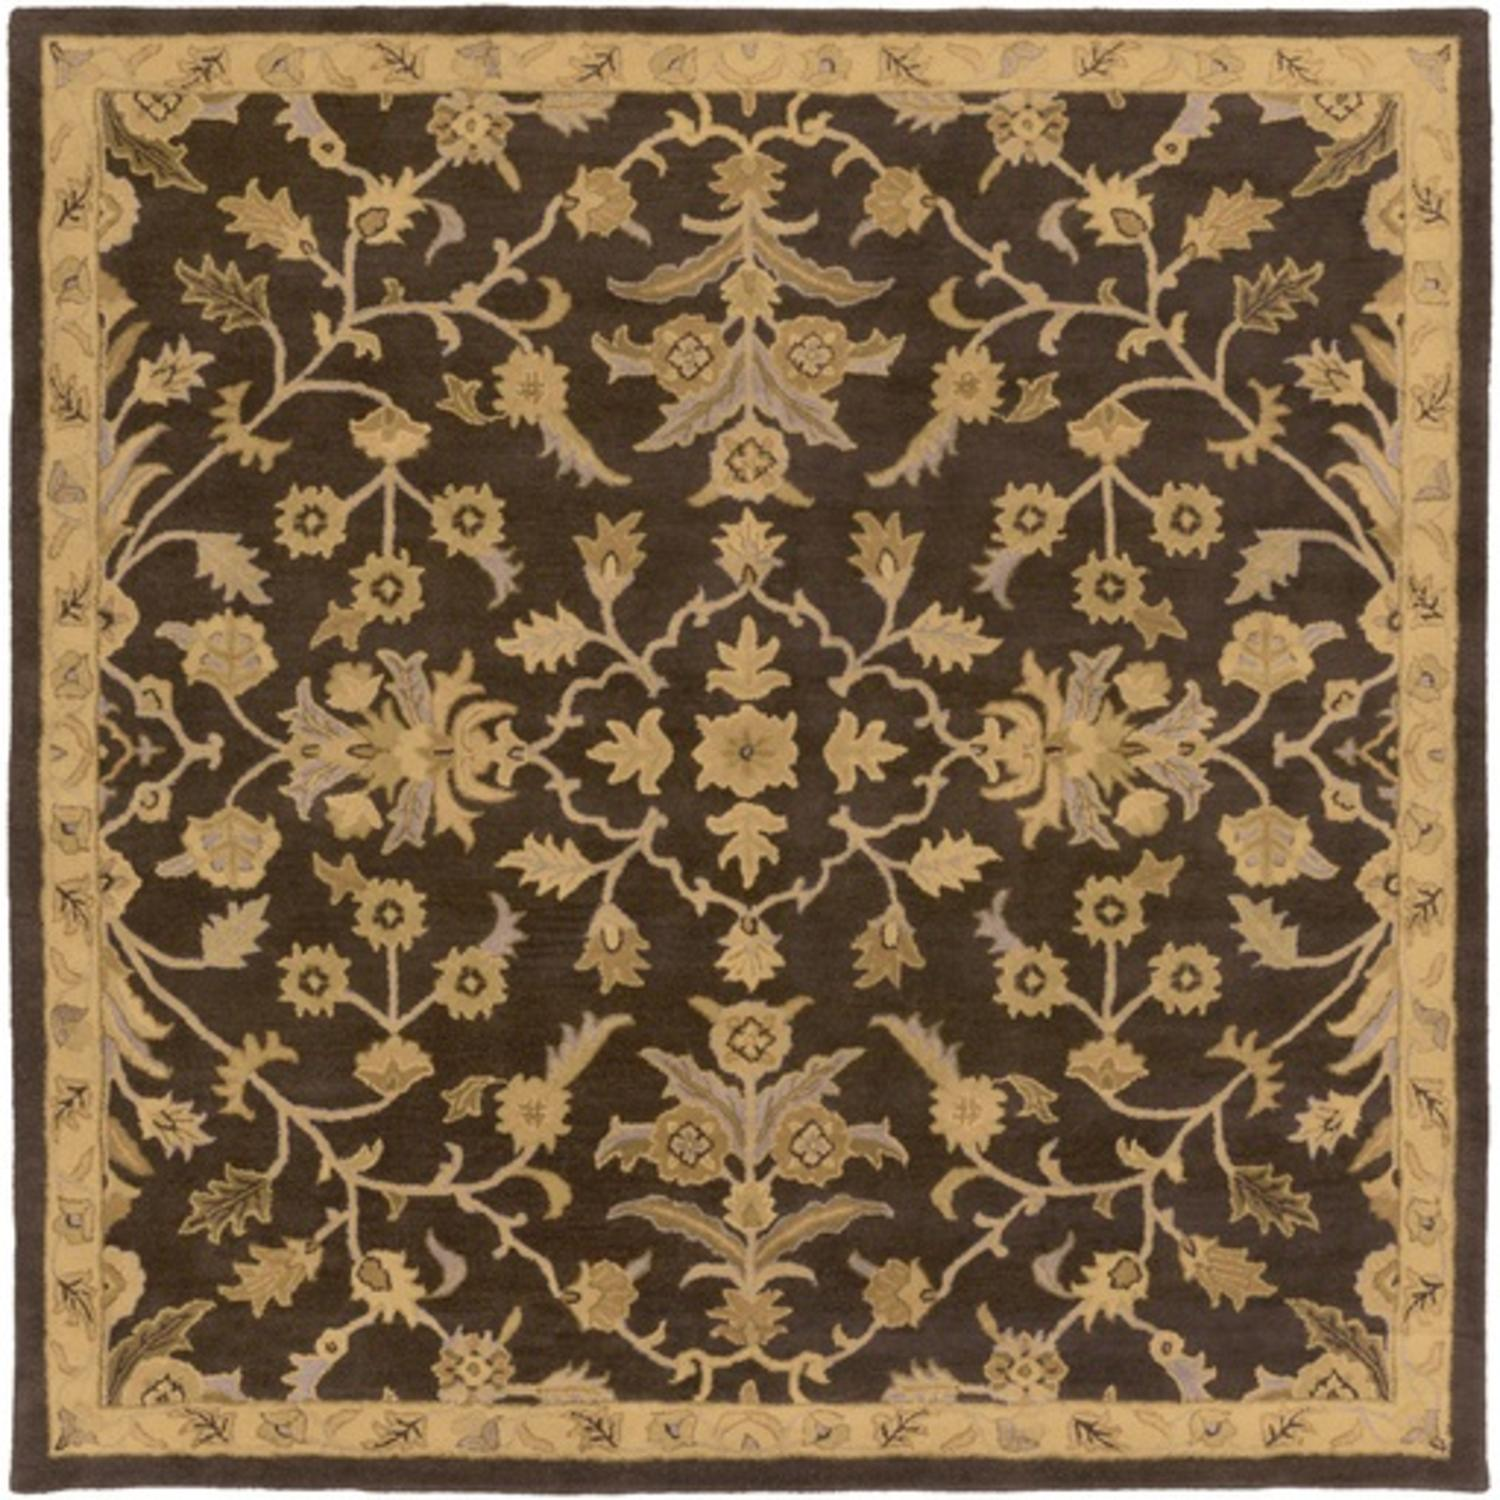 6' x 6' French Elegance Espresso, Gray and Gold Hand Tufted Wool Square Area Throw Rug